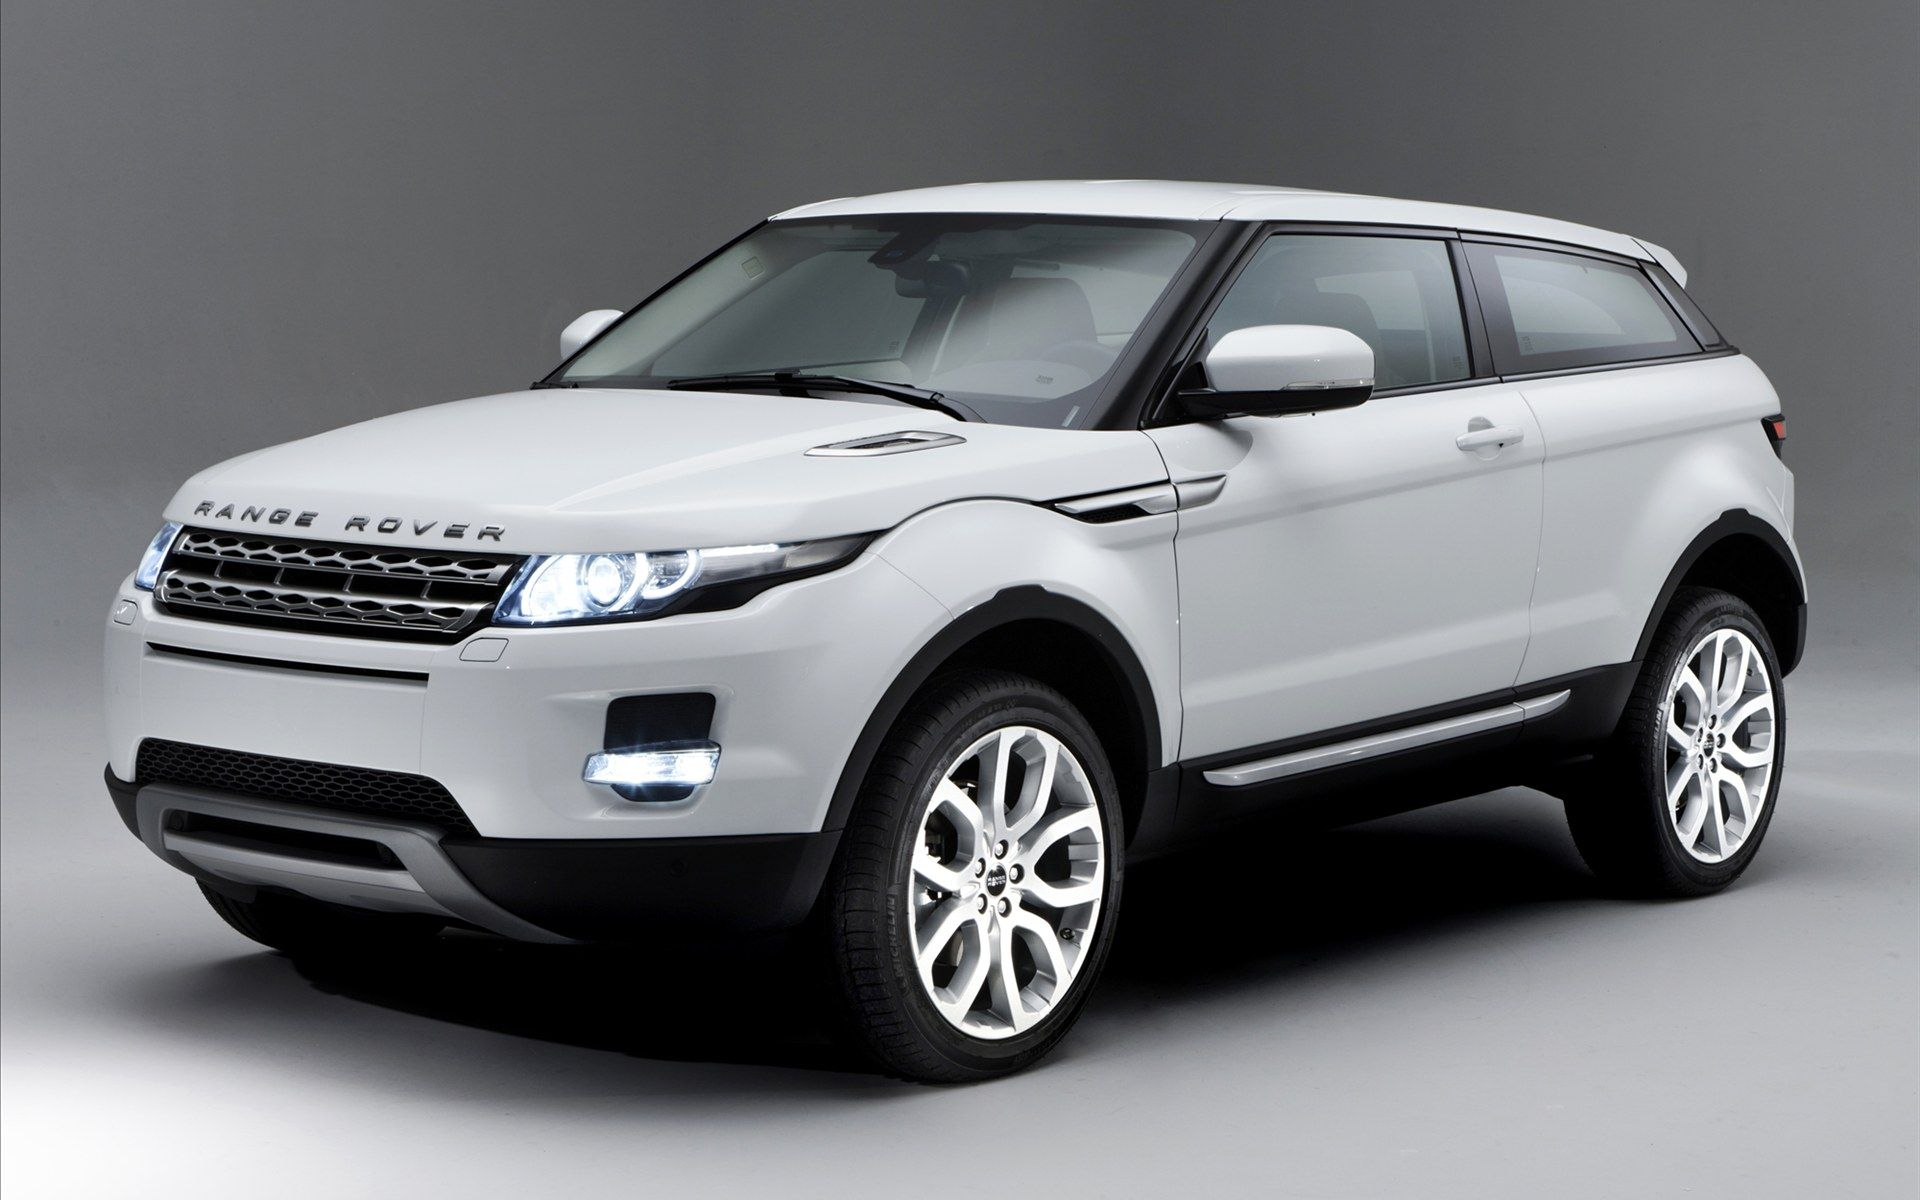 Range Rover Evoque Convertible Concept ruggedised practical and